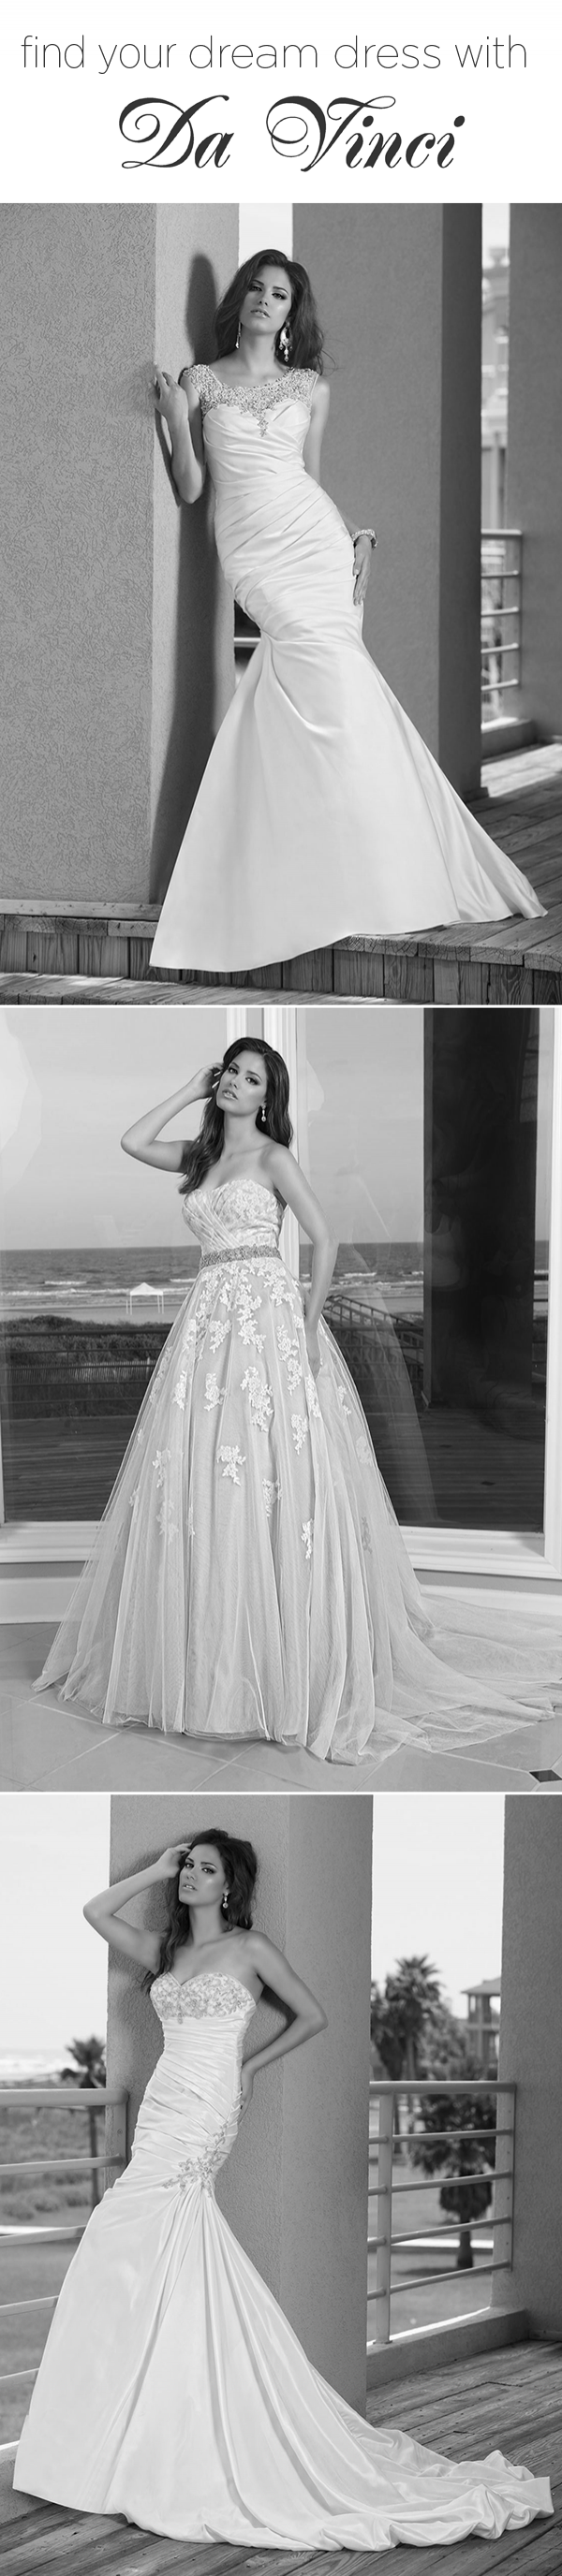 Designer Dresses from DaVinci Bridal